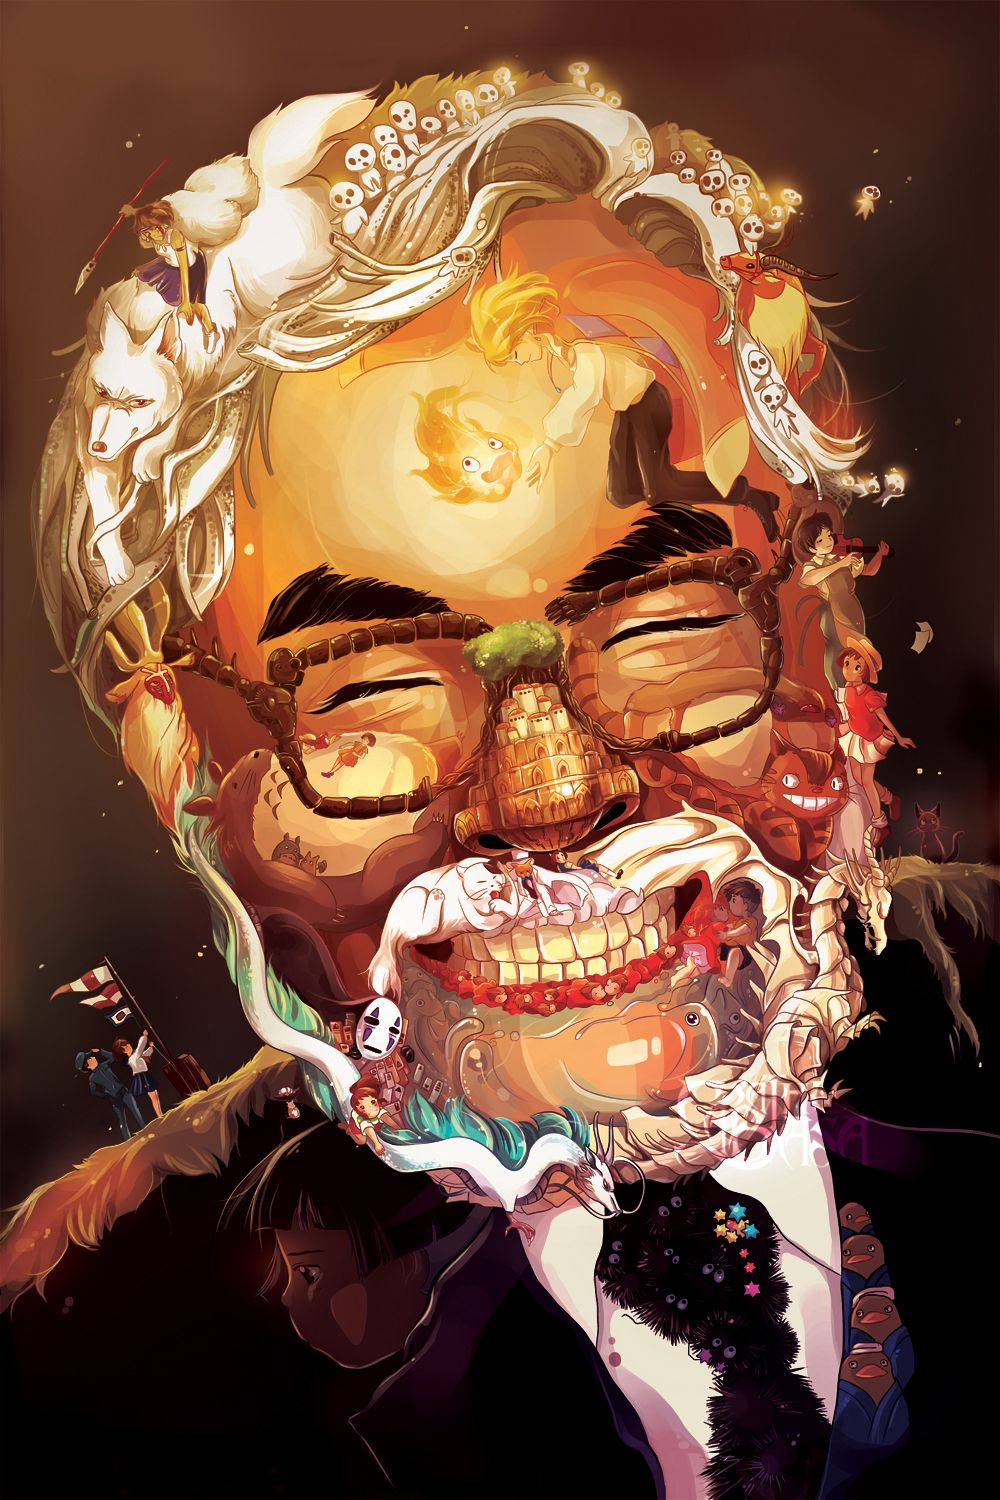 A Delightful Portrait of Hayao Miyazaki Made Out of Ghibli Characters